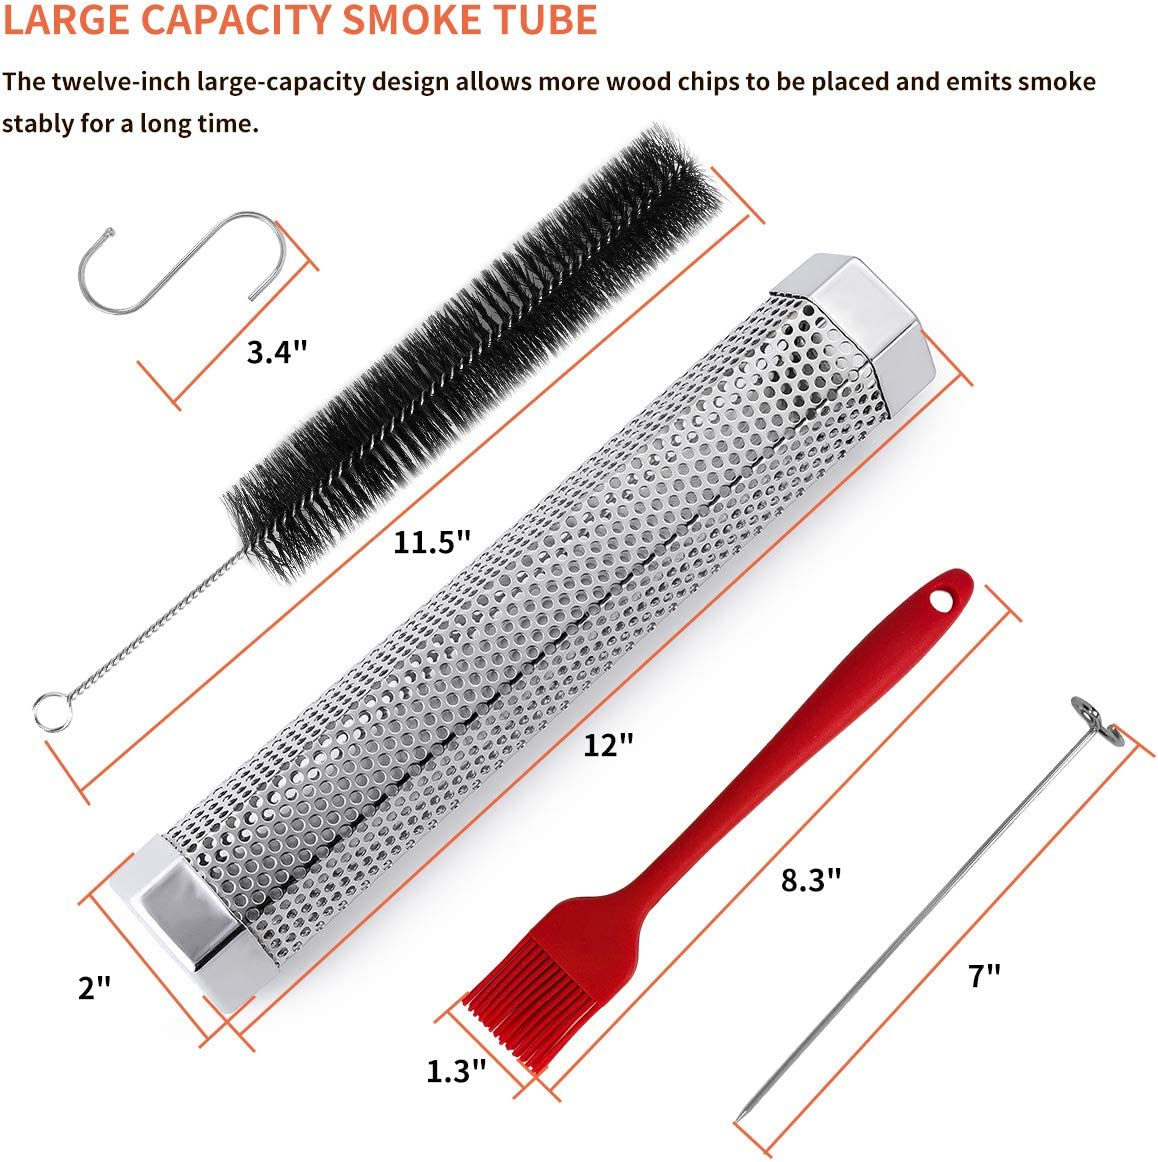 Ahomphe Grill Basket for Vegetables Large Grill Baskets for Outdoor Grill Heavy Duty Stainless Steel BBQ Grilling Accessories for Veggies Kabob Meat